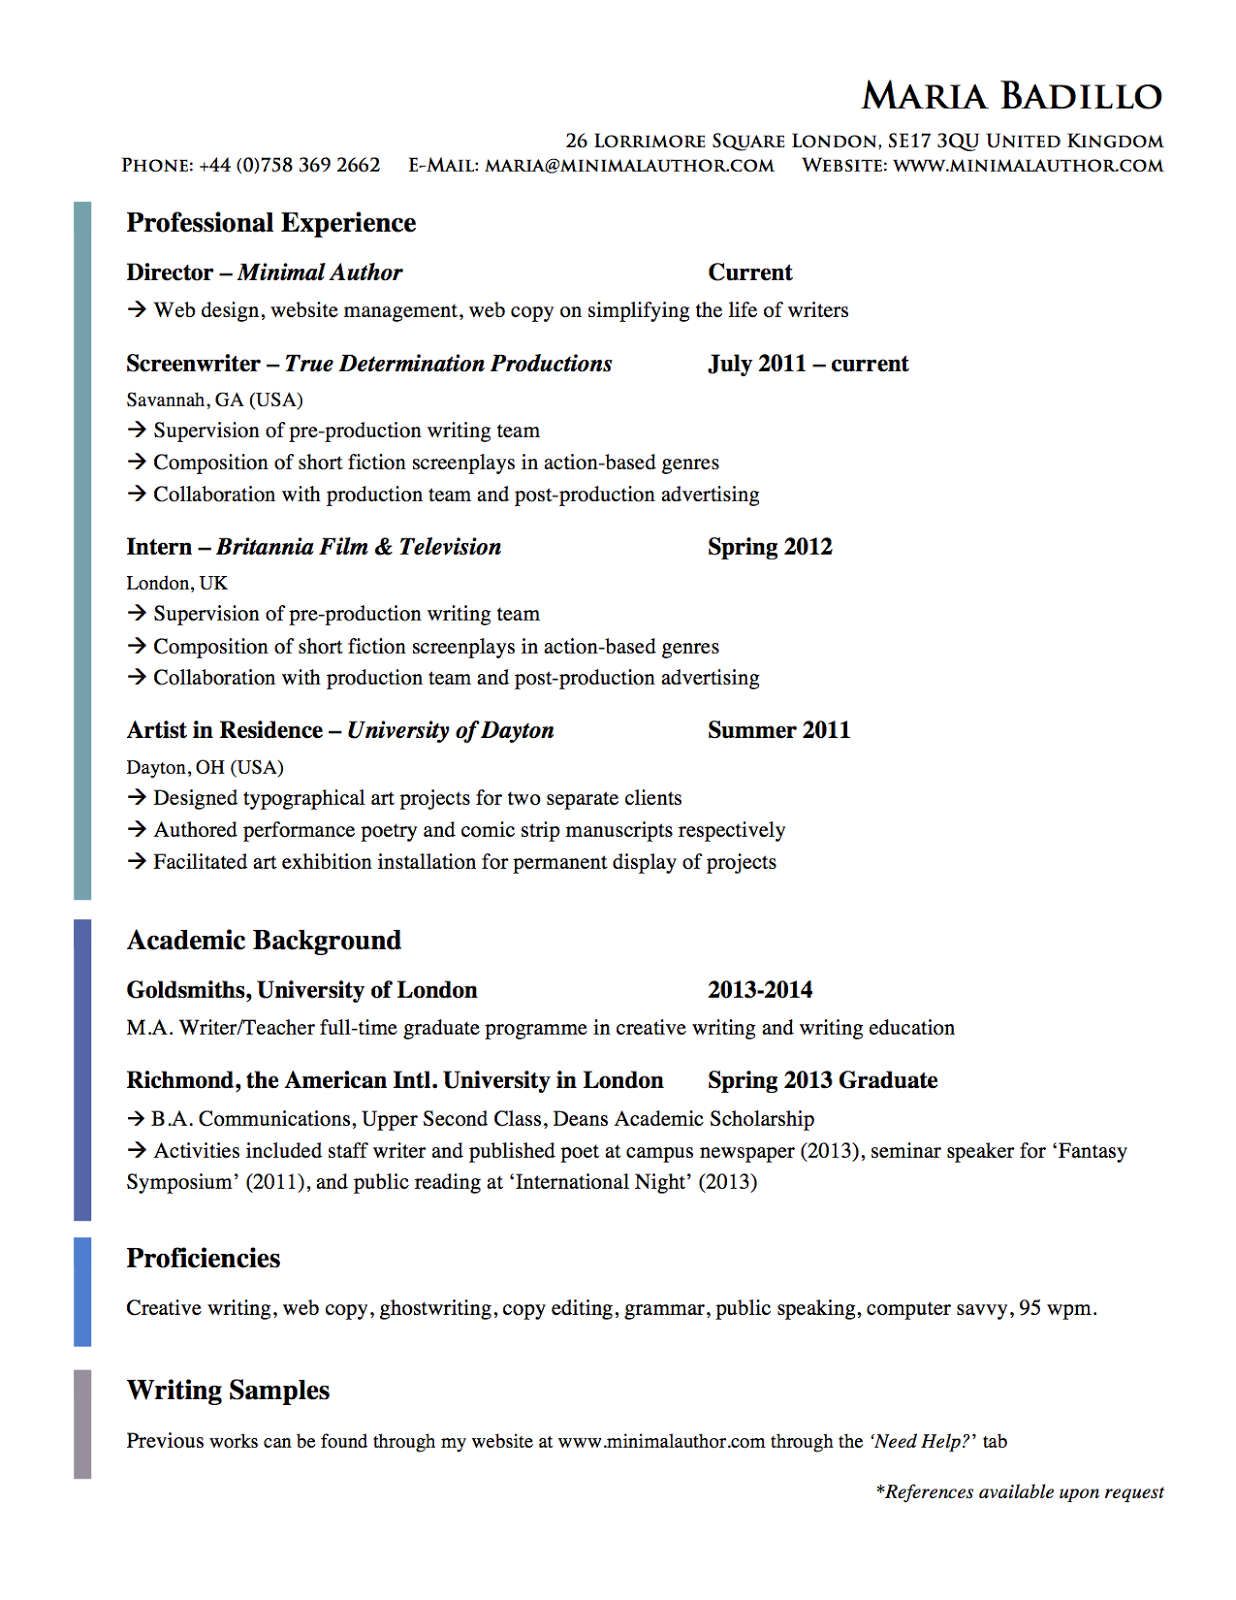 Resume Formats resume template heres why you should attend format of  Breakupus Licious Free Resume Templates